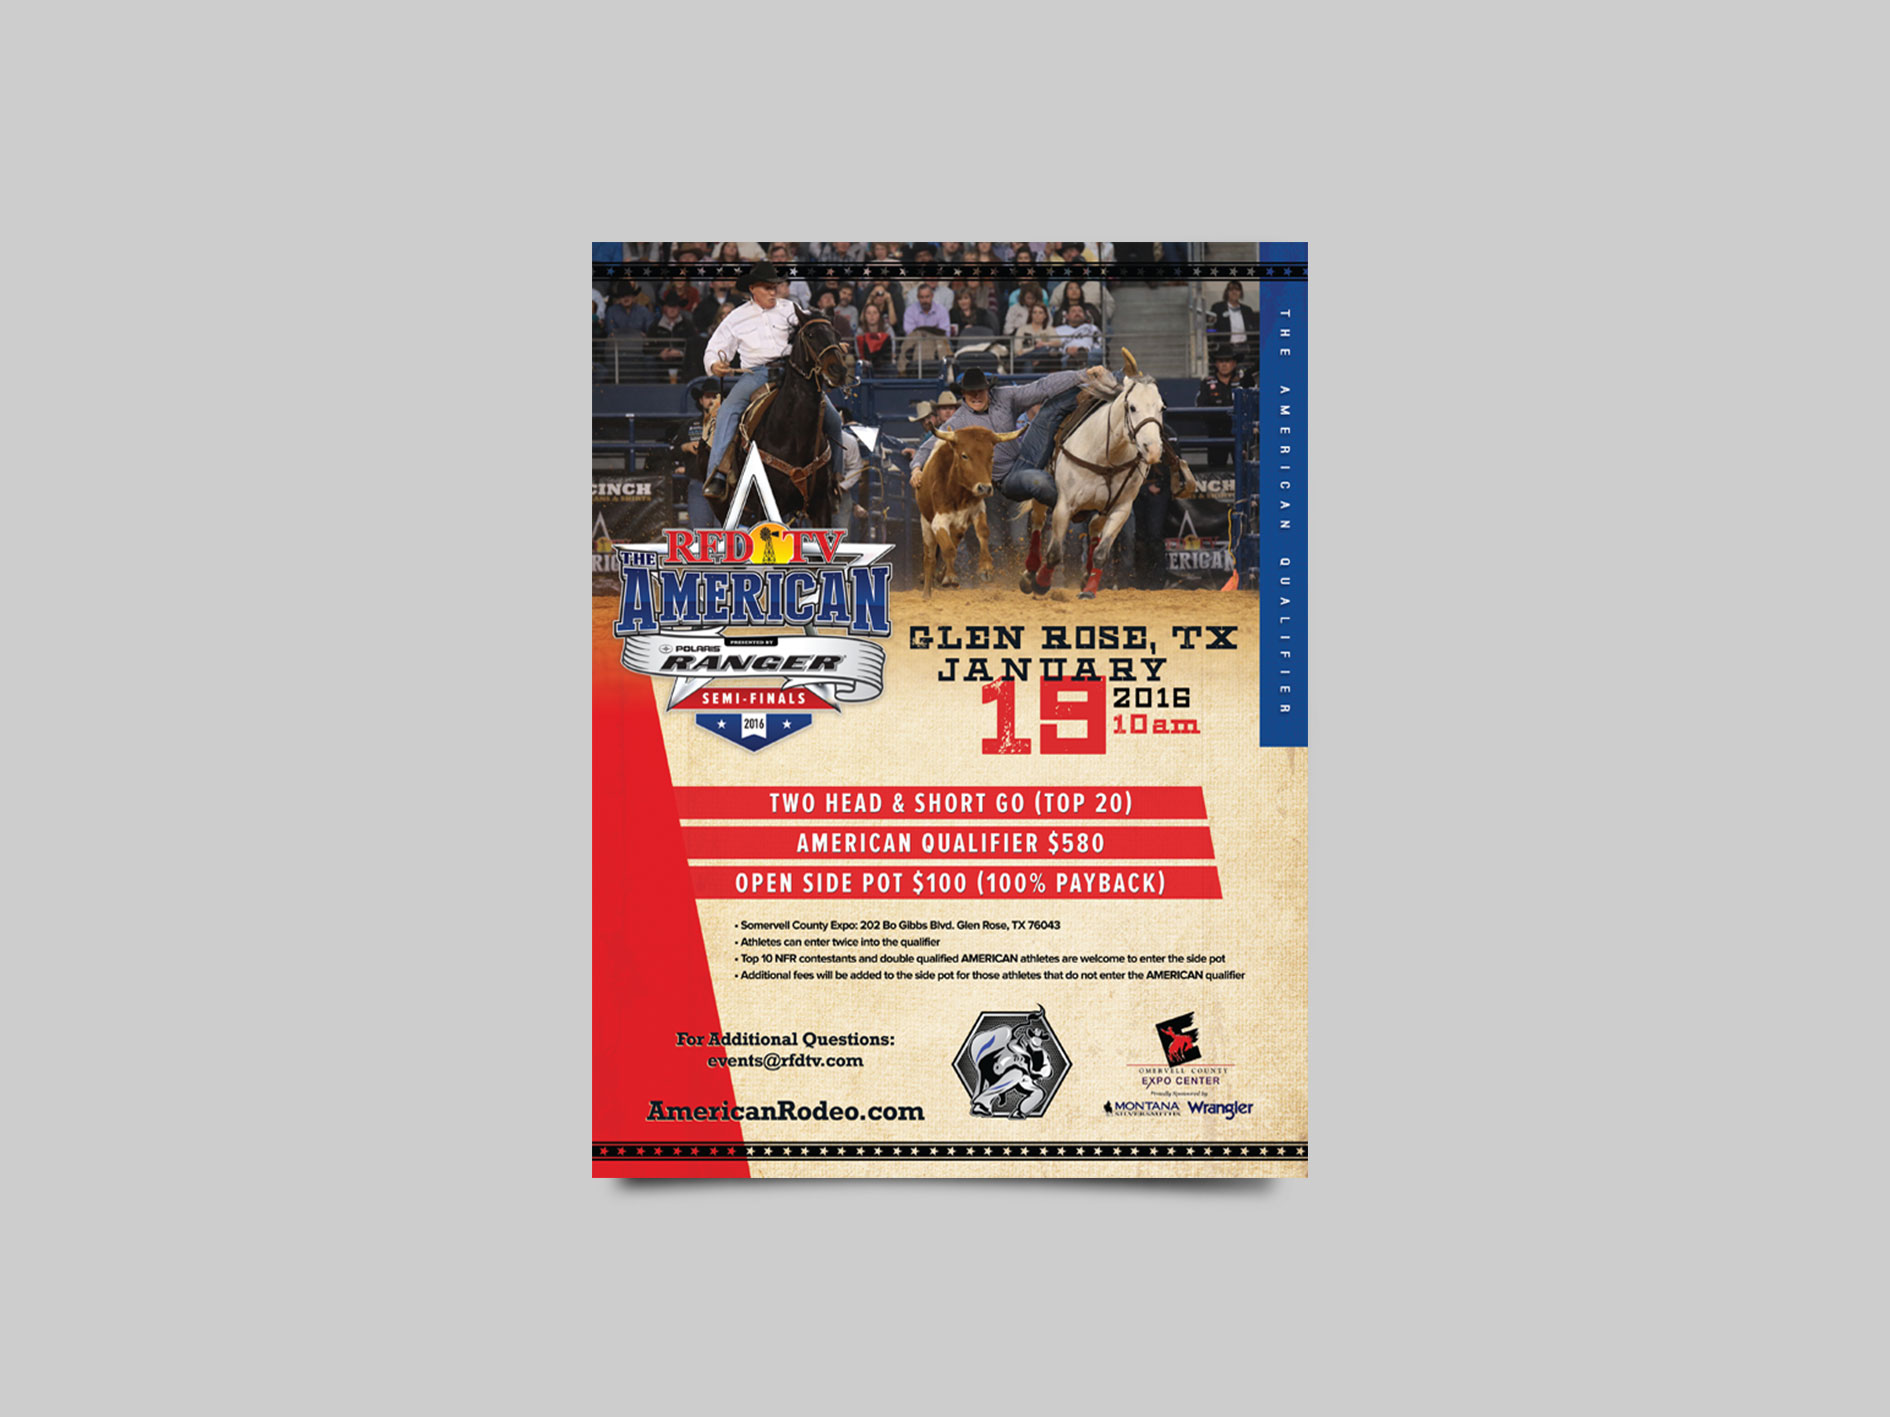 Advertising flyers for THE AMERICAN rodeo qualifier events.